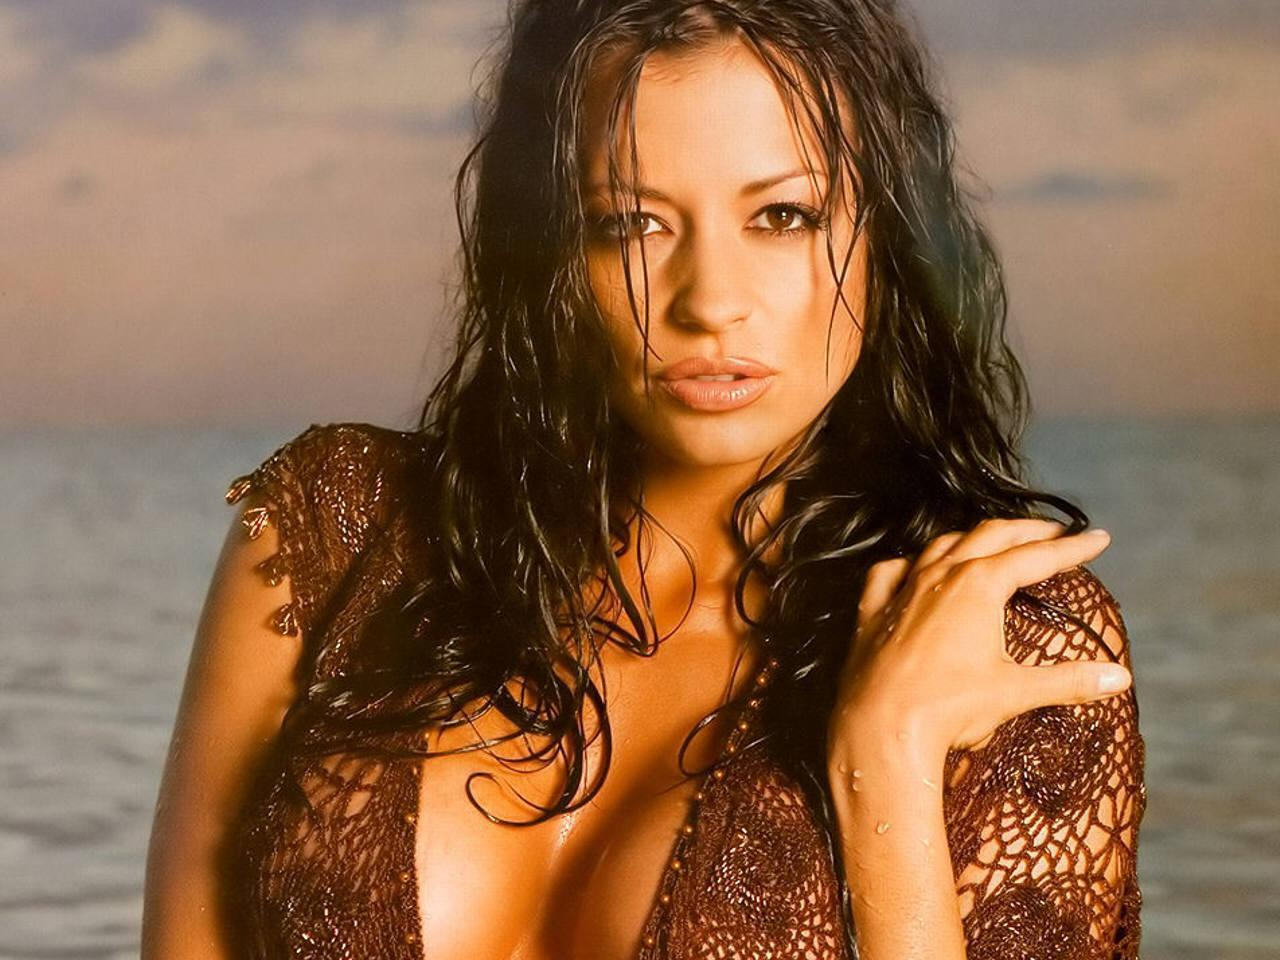 Candice Michelle - Wallpaper